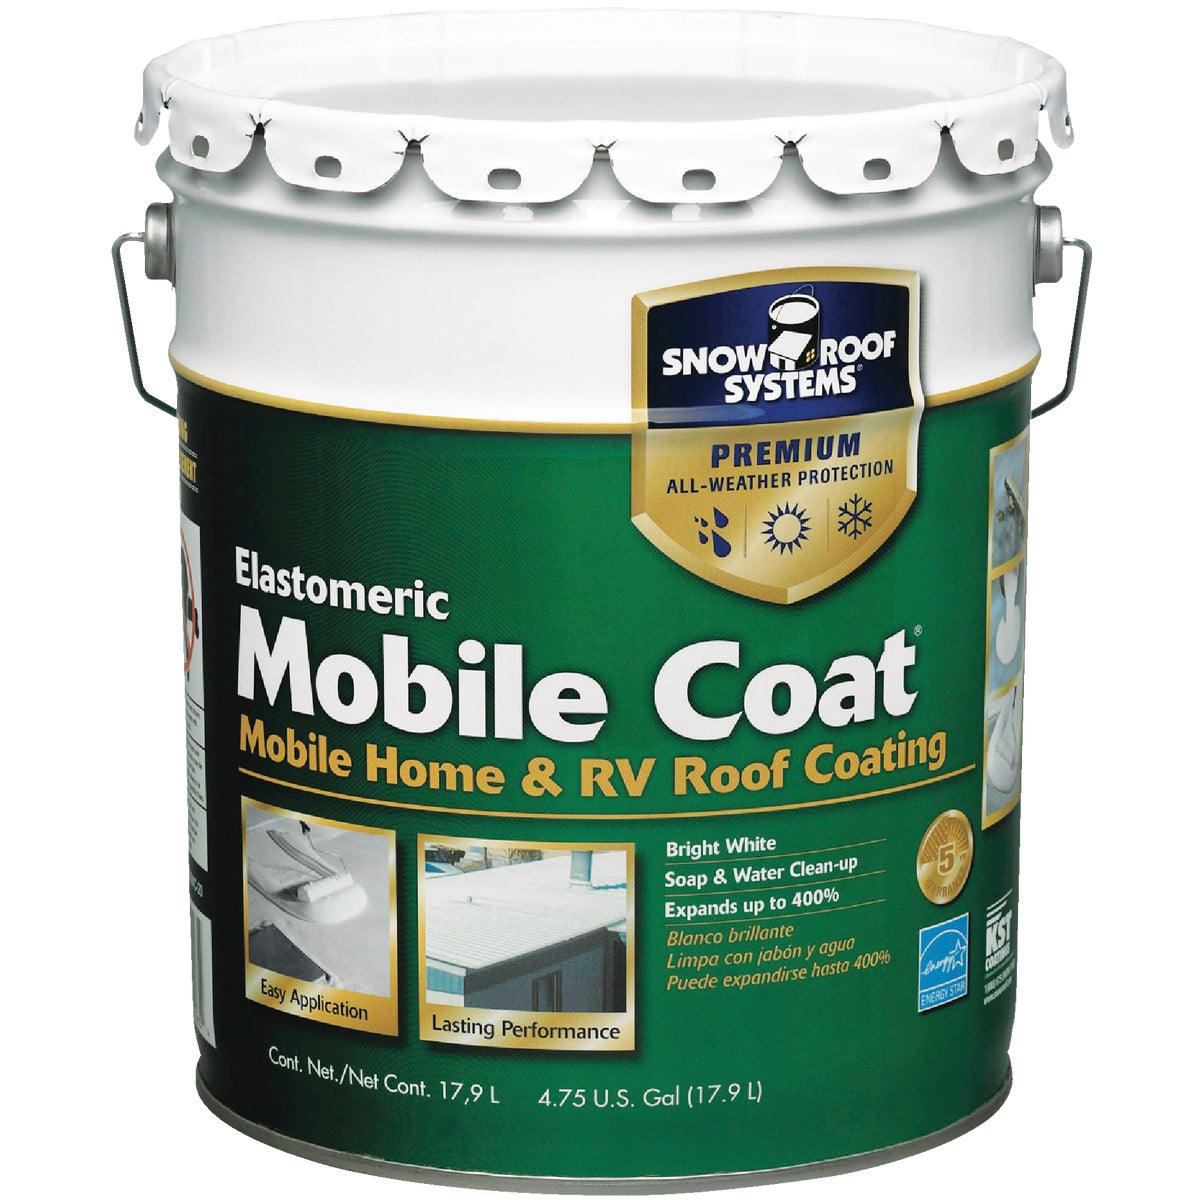 5GAL MOBILE ROOF COATING - MC-5 by Snow Roof